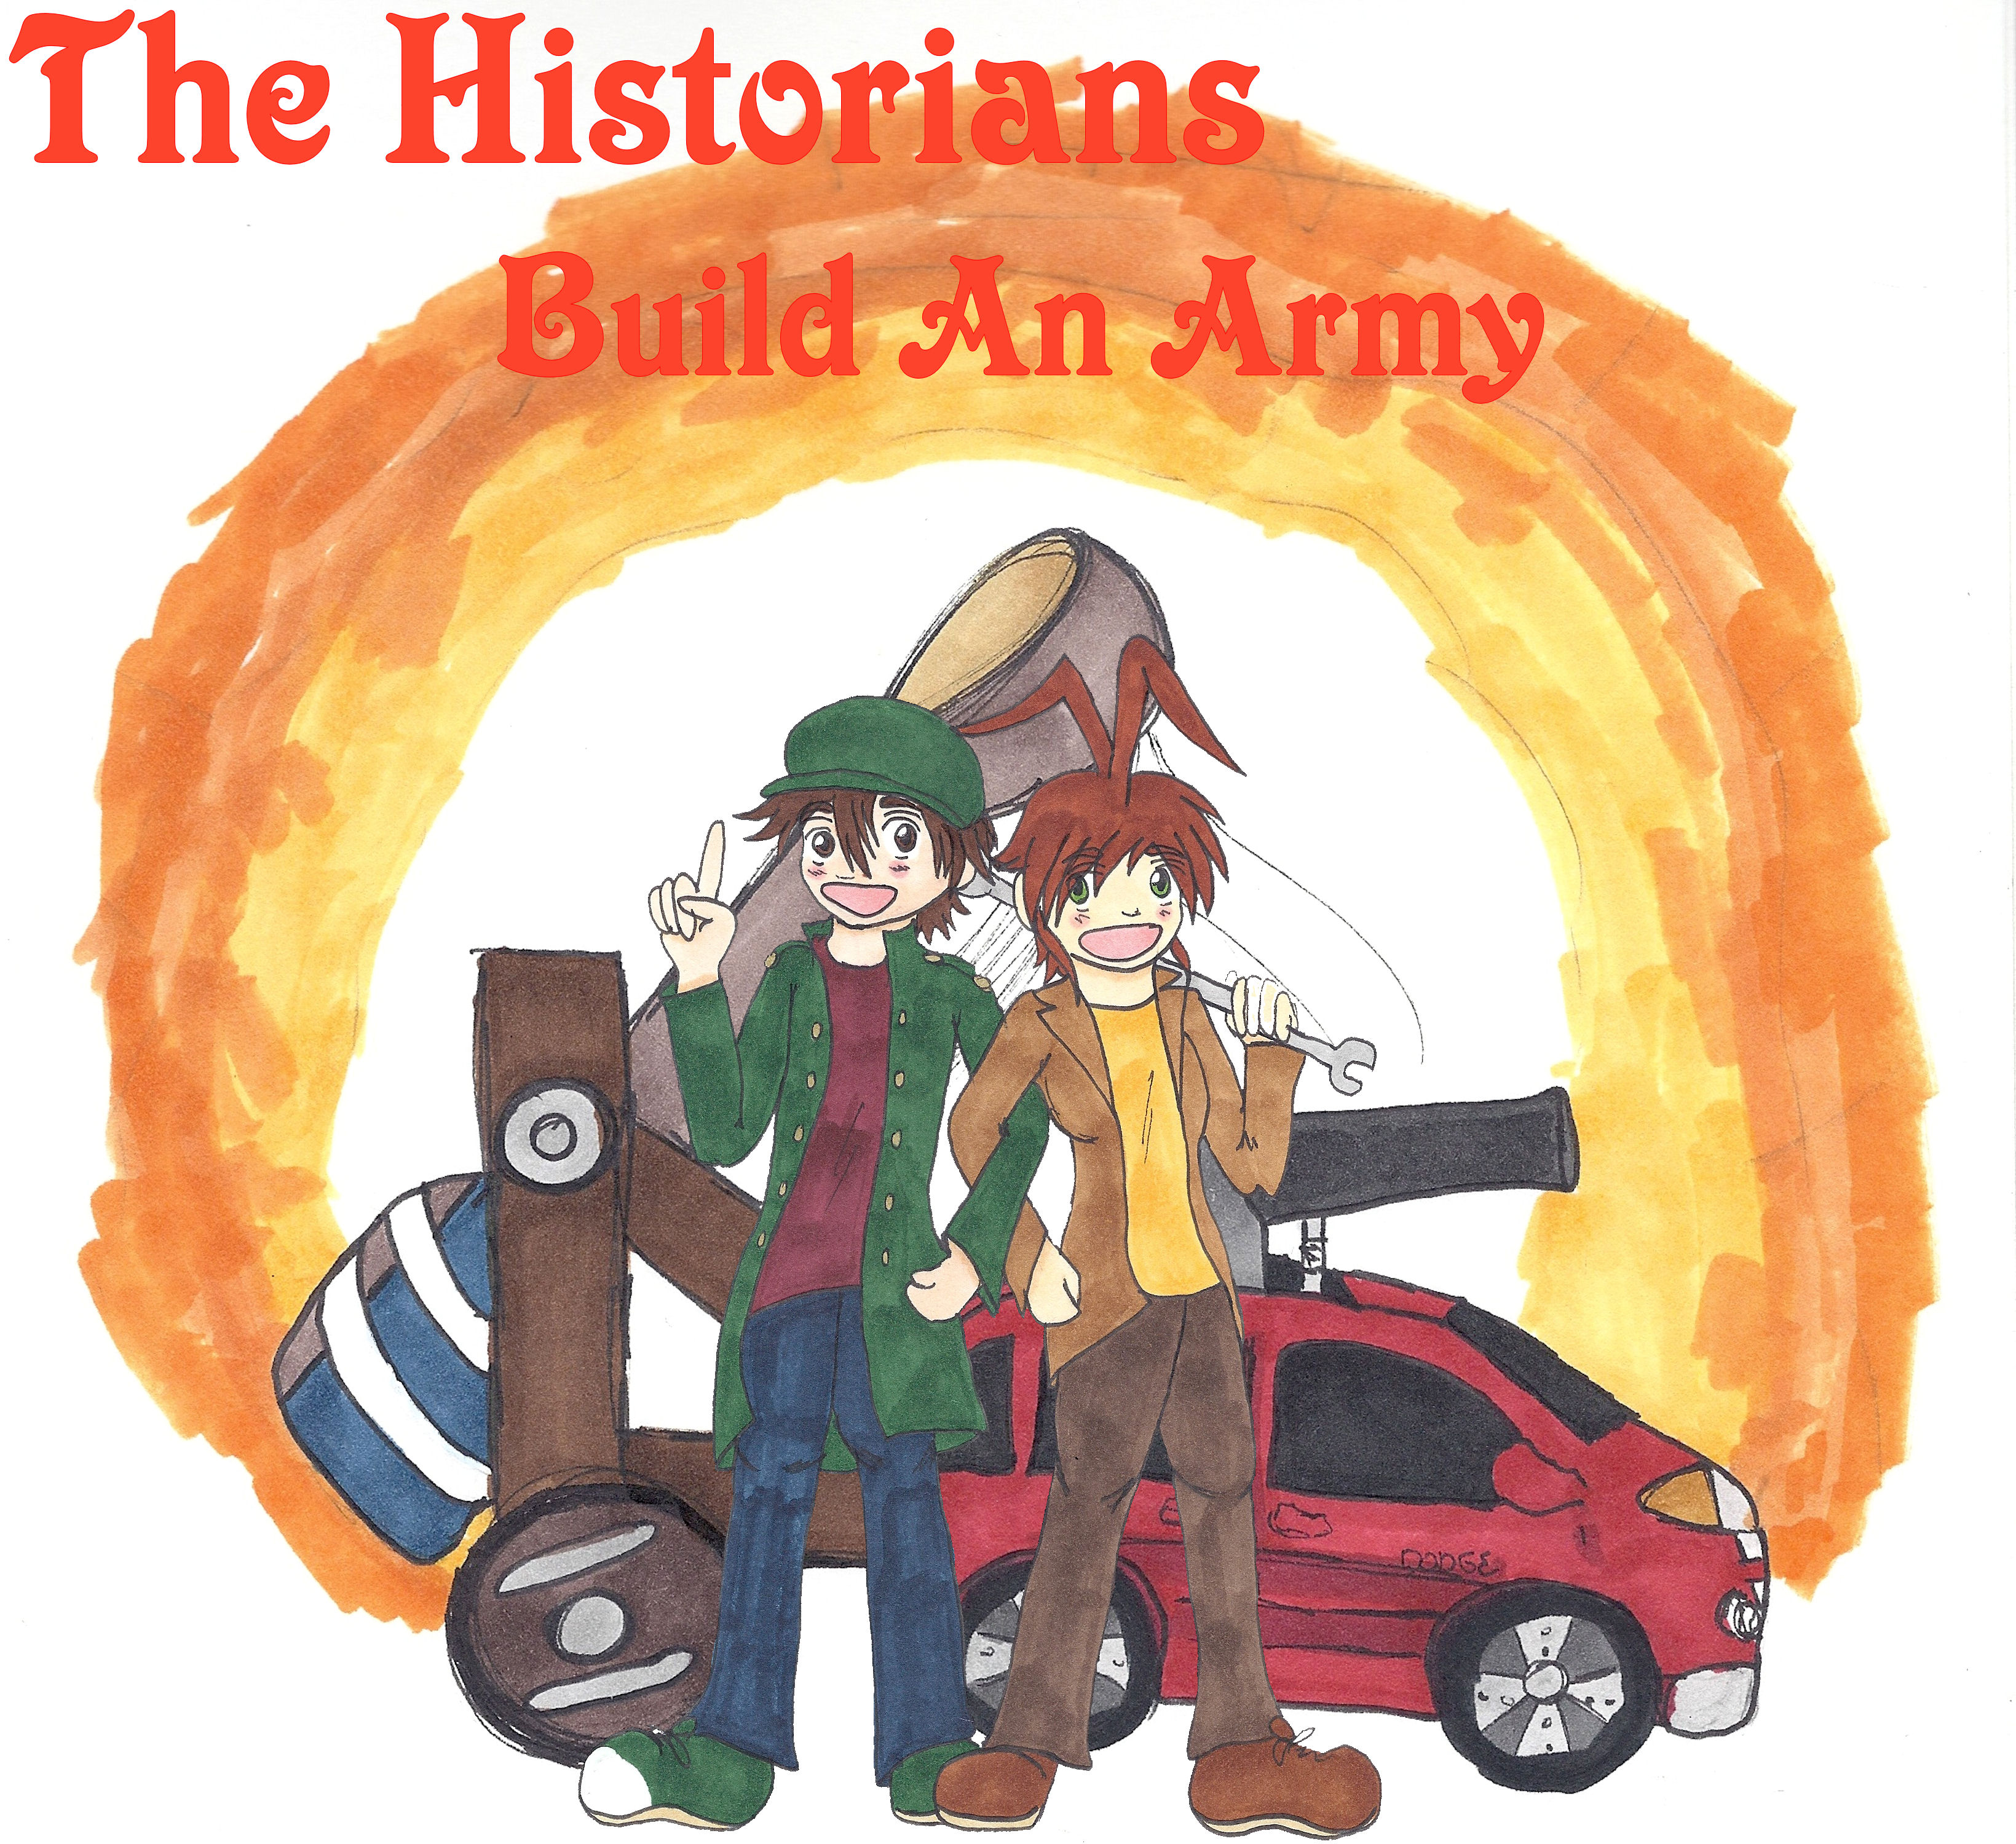 Splash Page: The Historians Build An Army